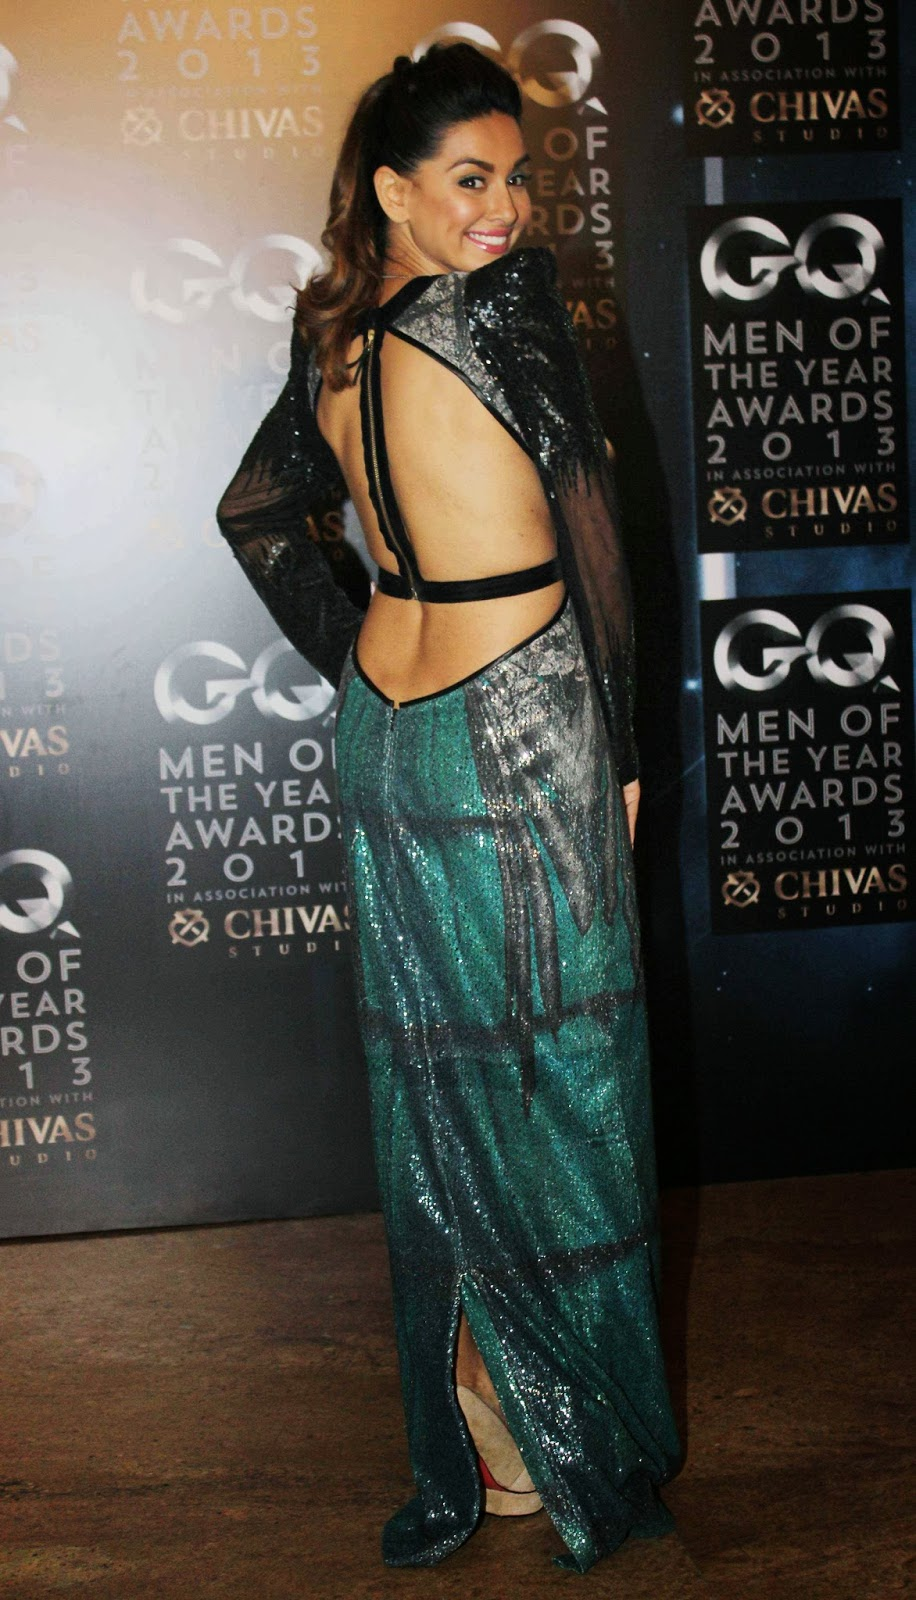 High Quality Bollywood Celebrity Pictures: Evelyn Sharma